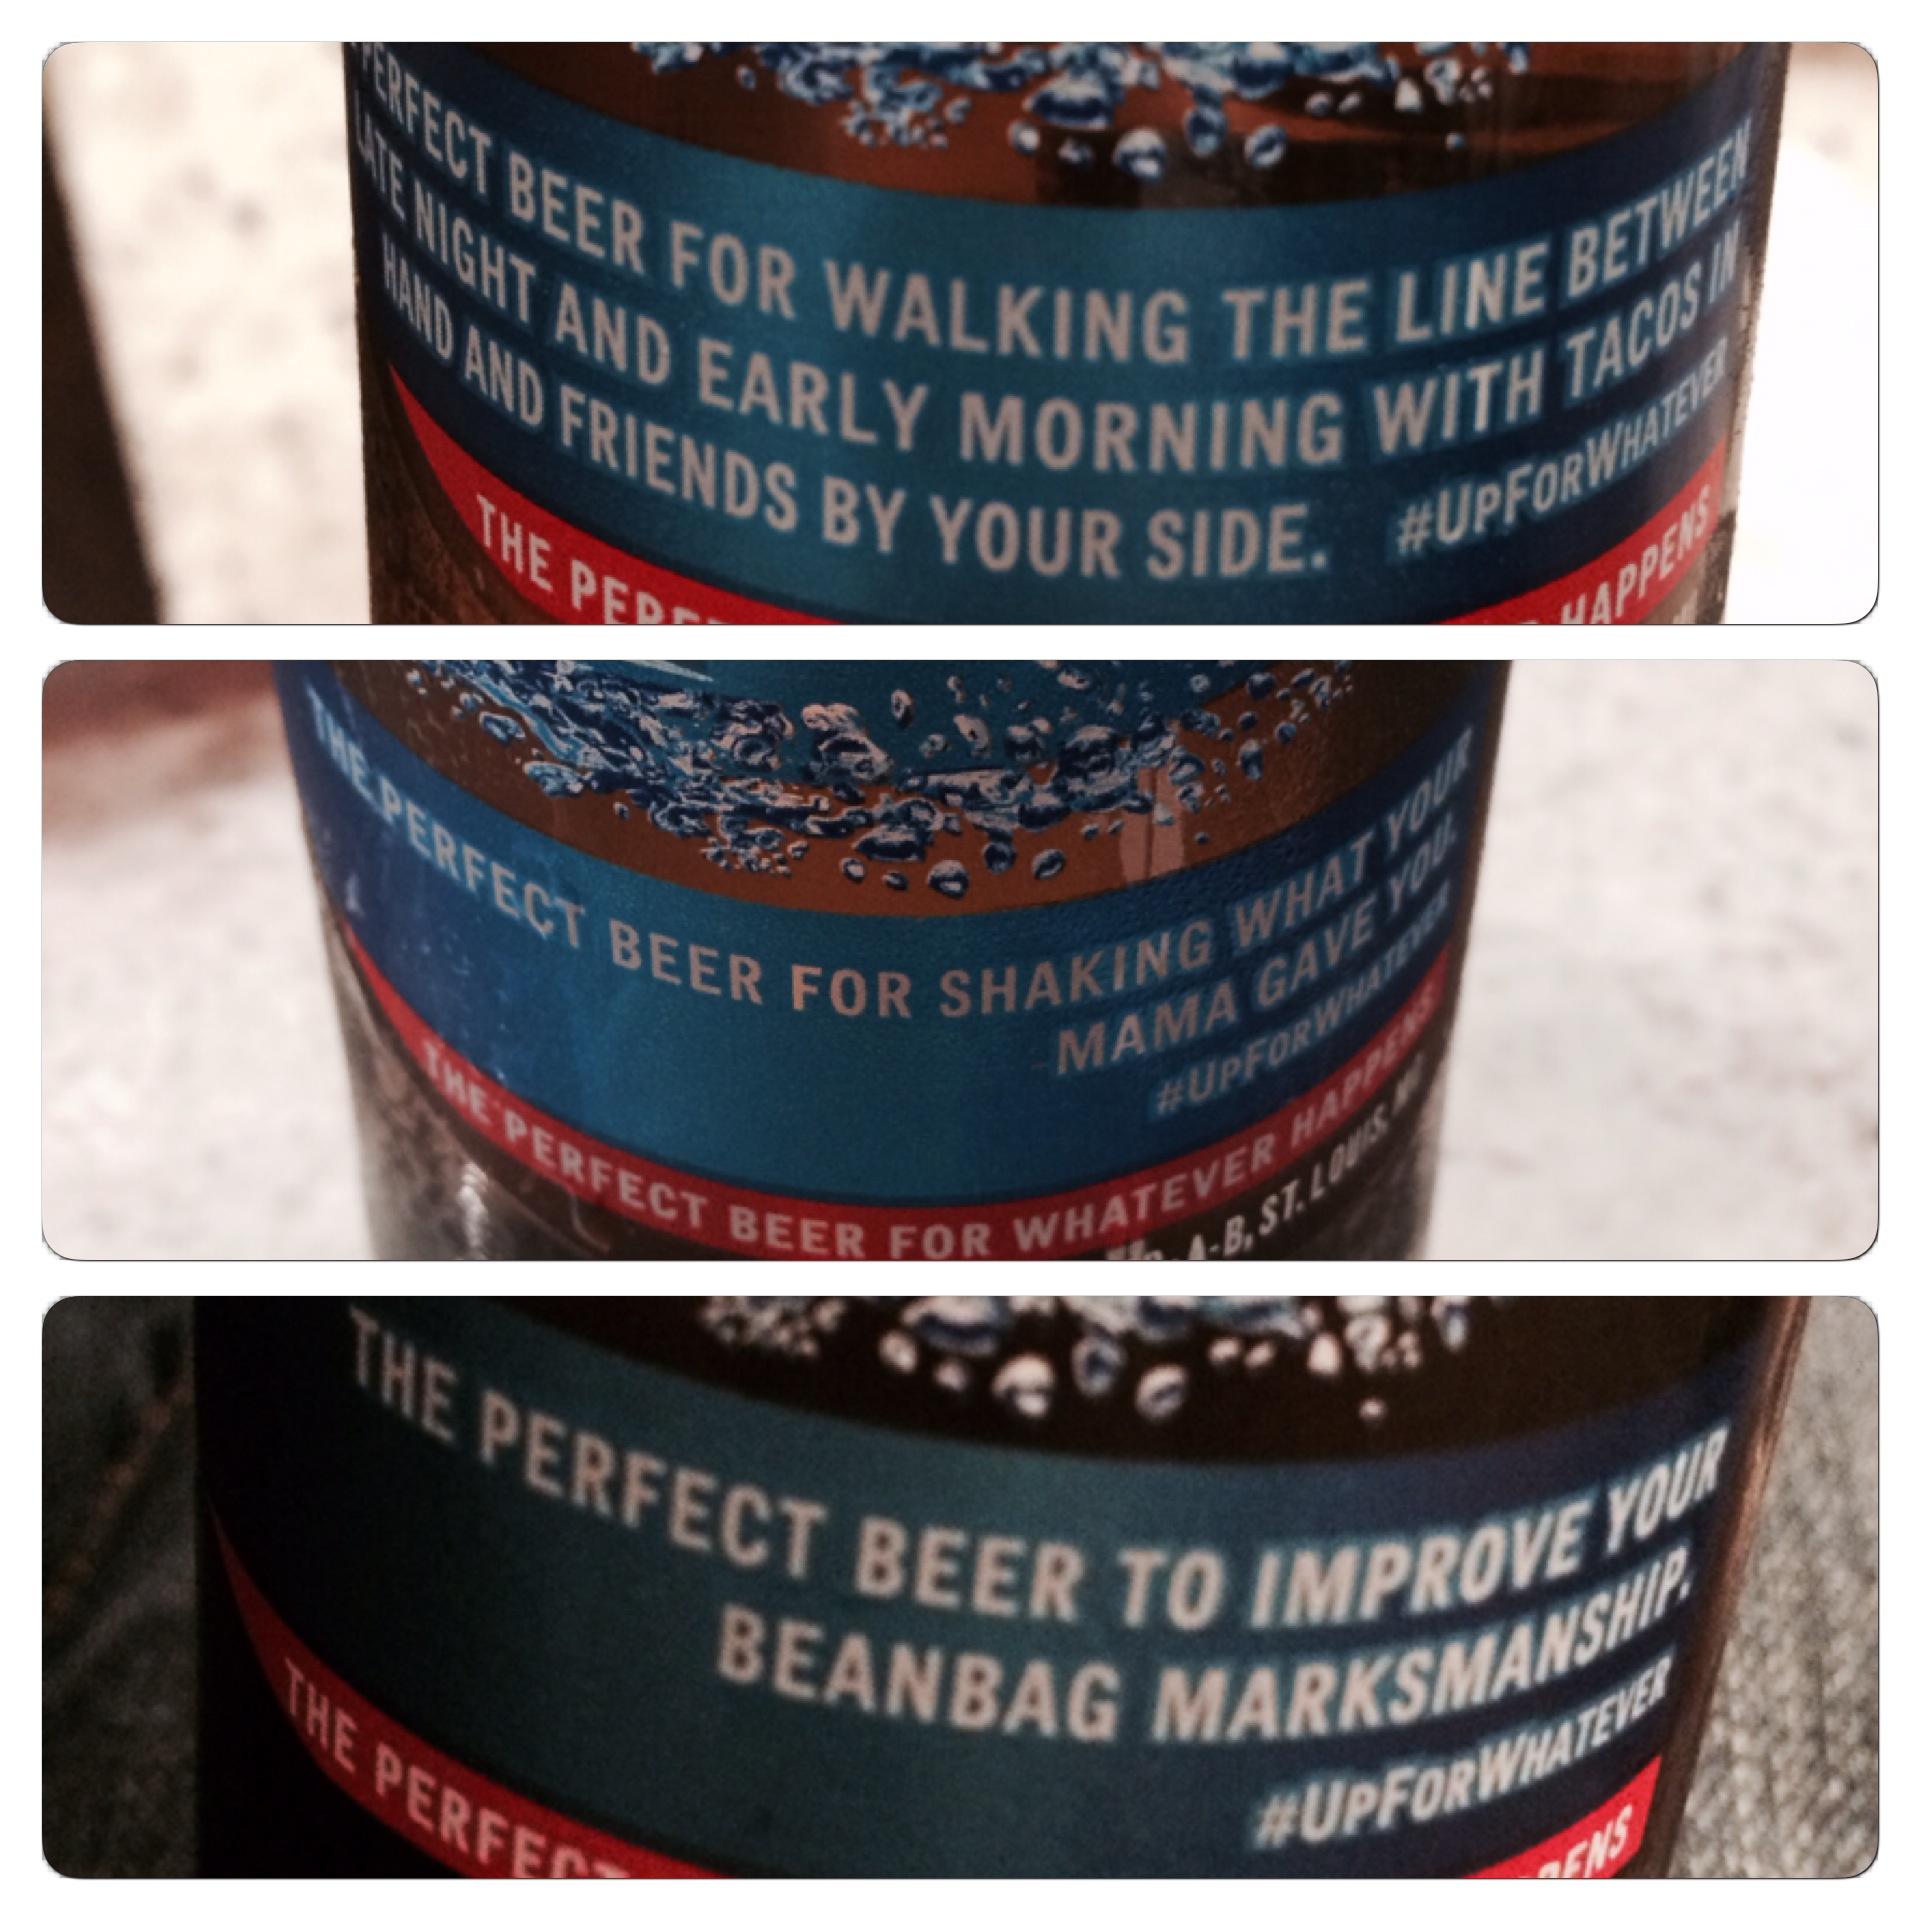 Some of the silly sayings on Bud Light labels.